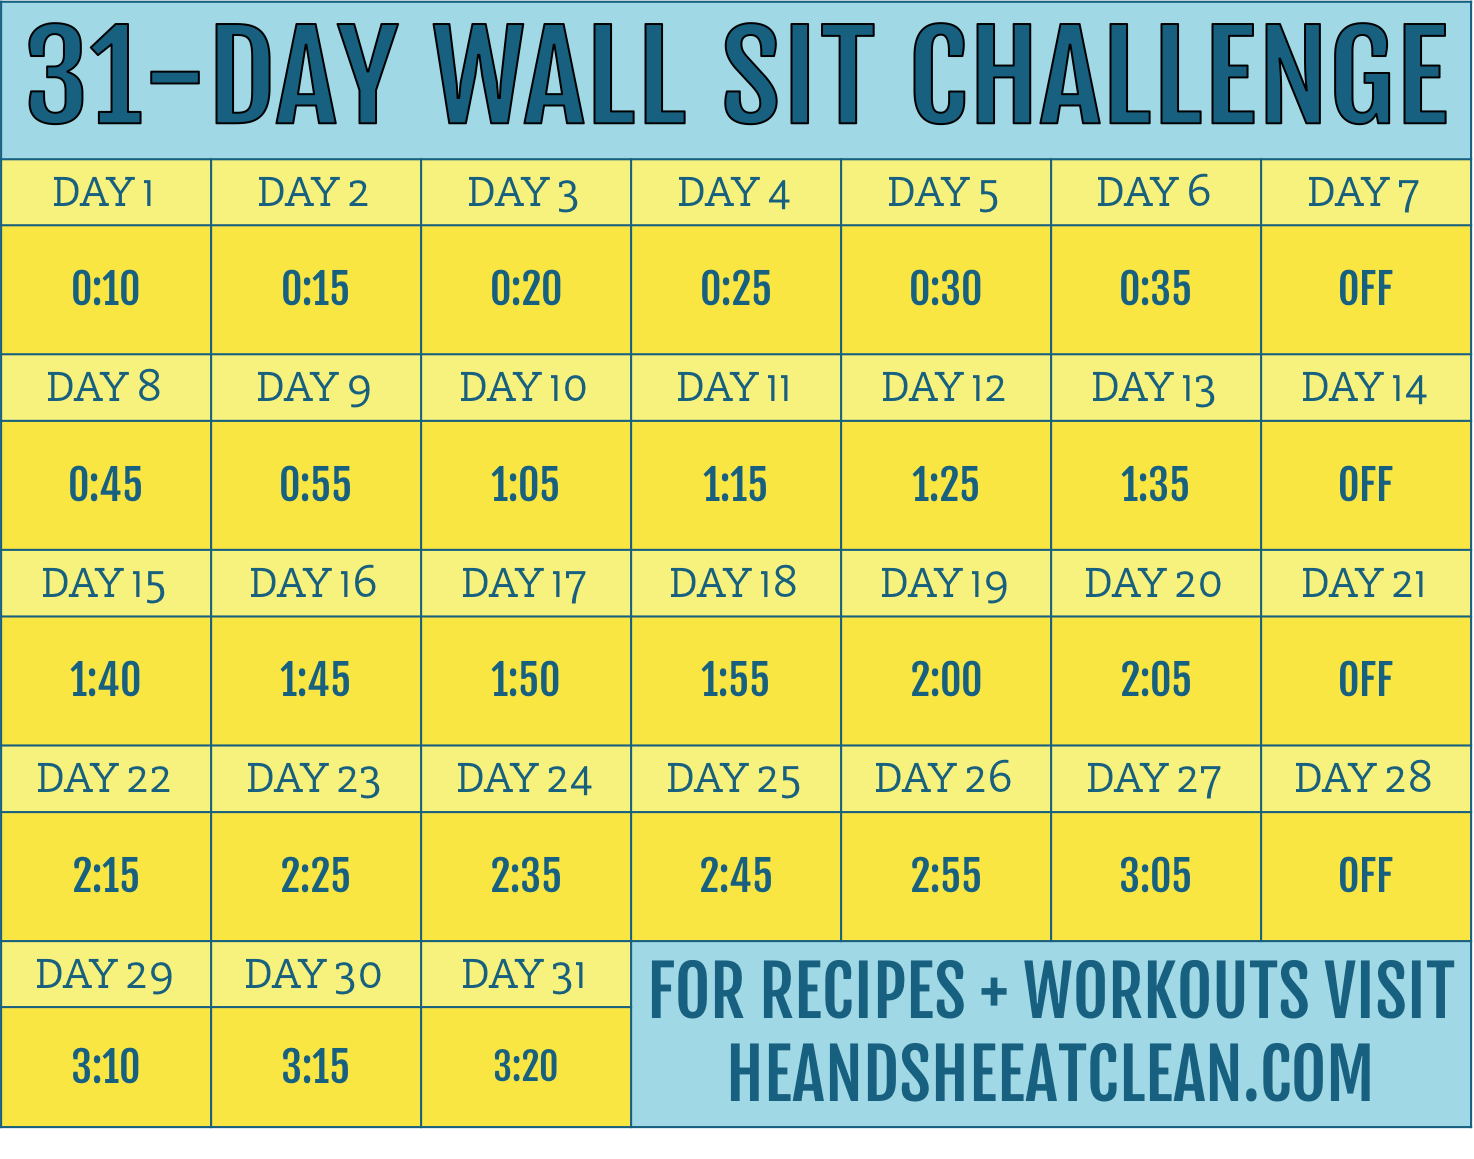 31-Day Wall Sit Challenge